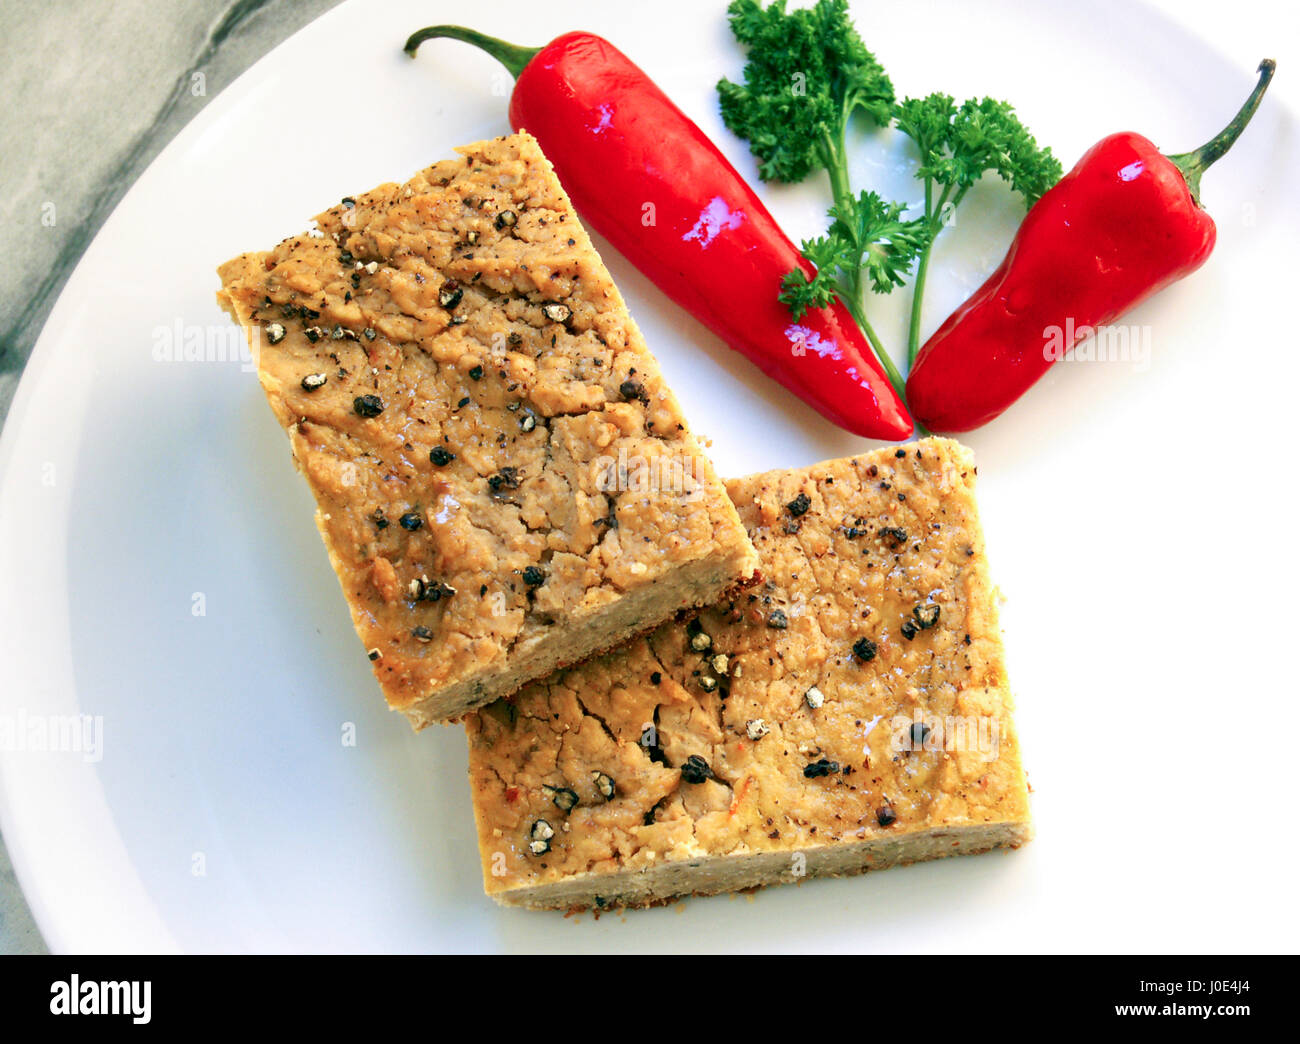 Savoury pastry with bean and chilli - Stock Image